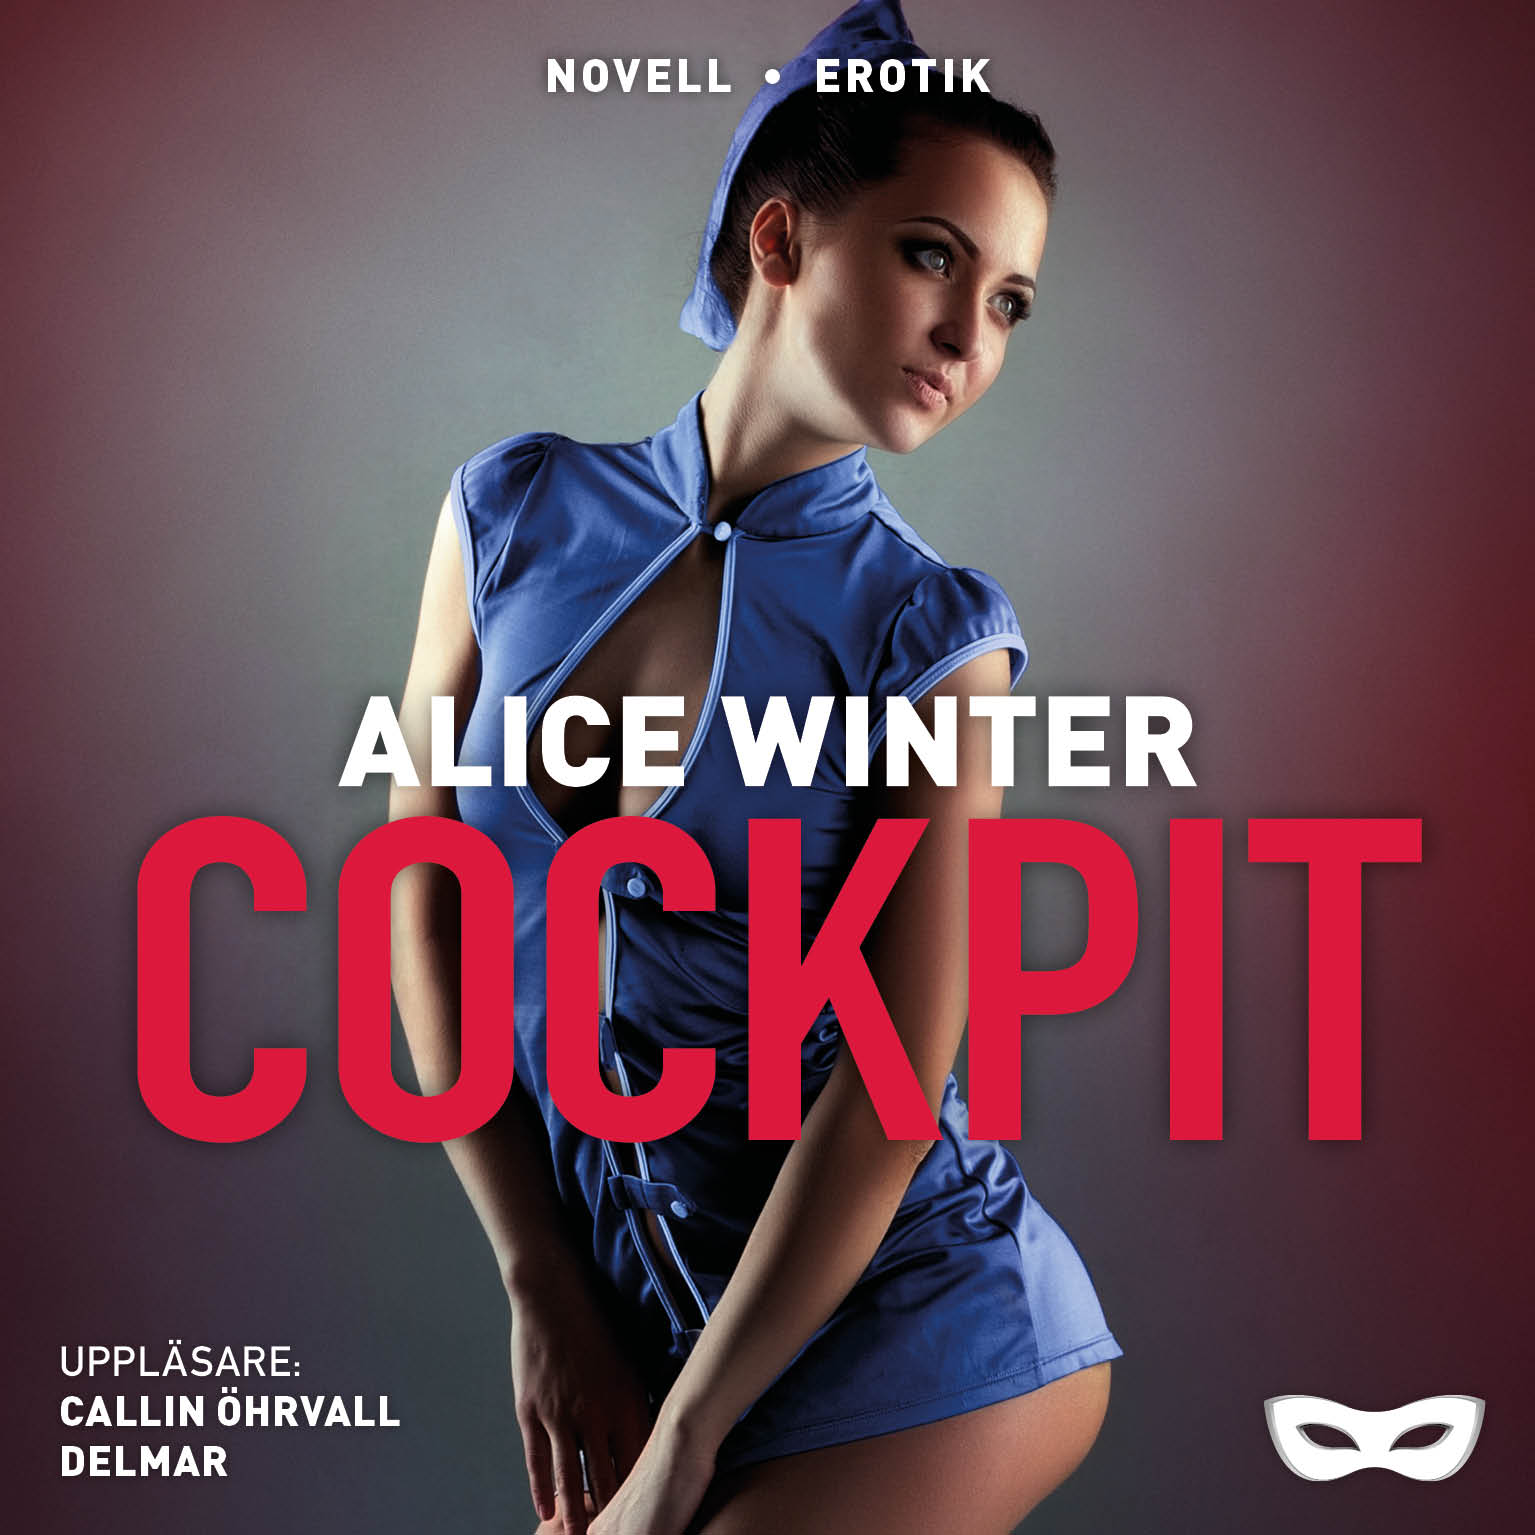 ROSALYNE3_Cockpit_Alice Winter_audio.jpg